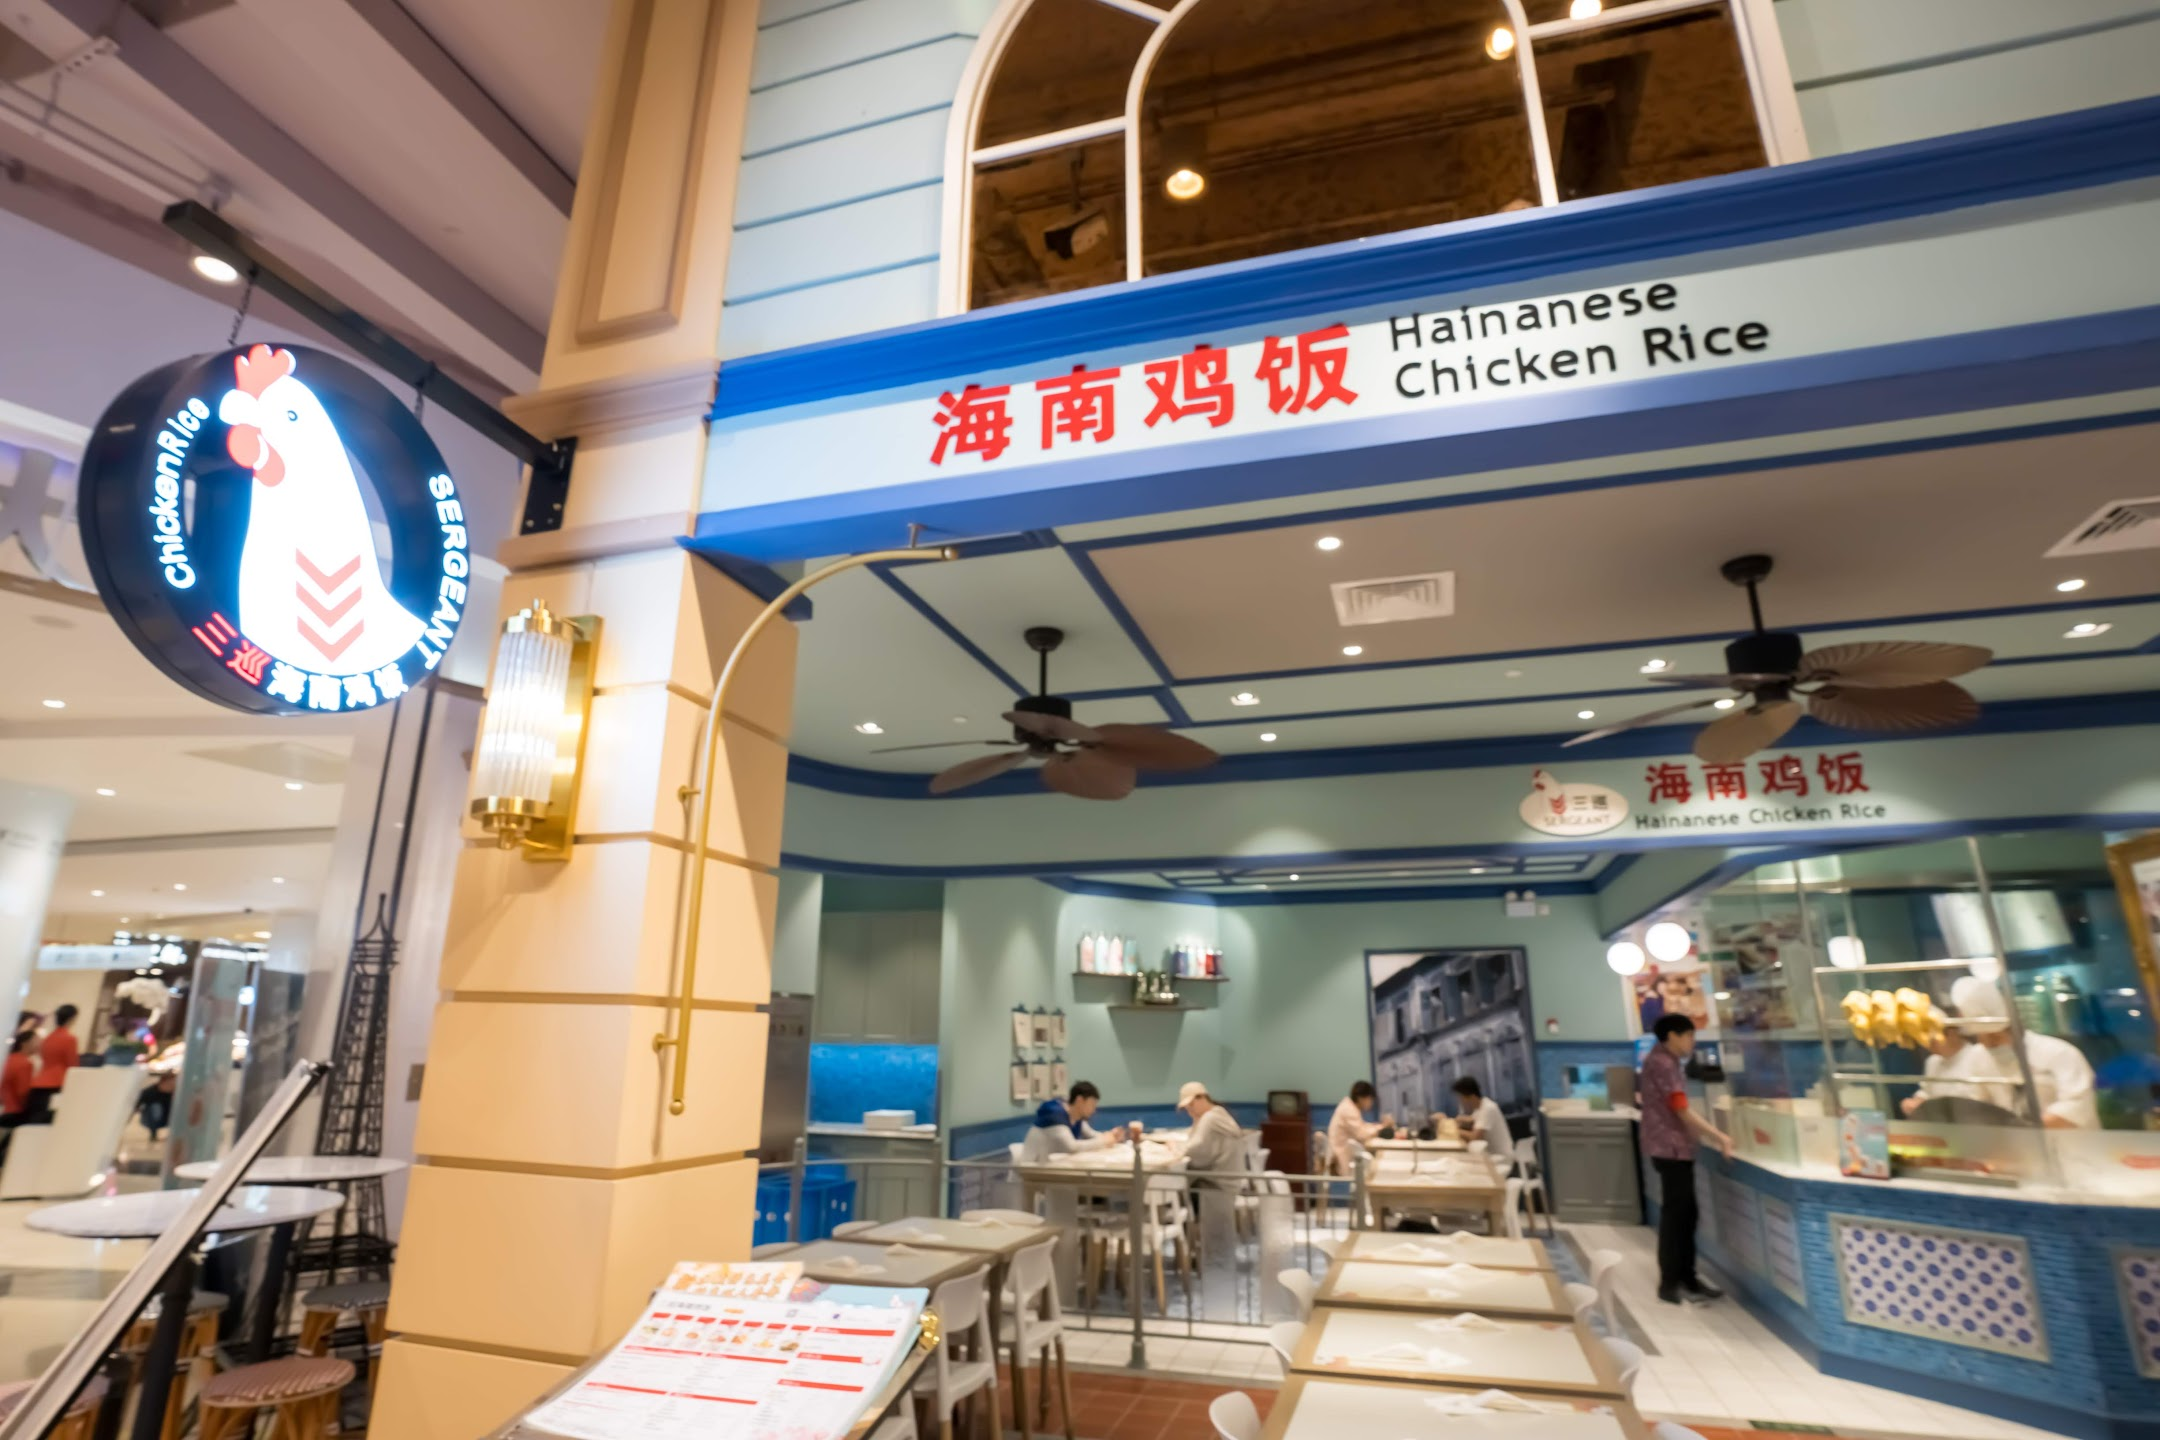 Shanghai tower Food Republic(大食代) 三巡海南鶏飯(Sergent Hainanese Chicken Rice)1